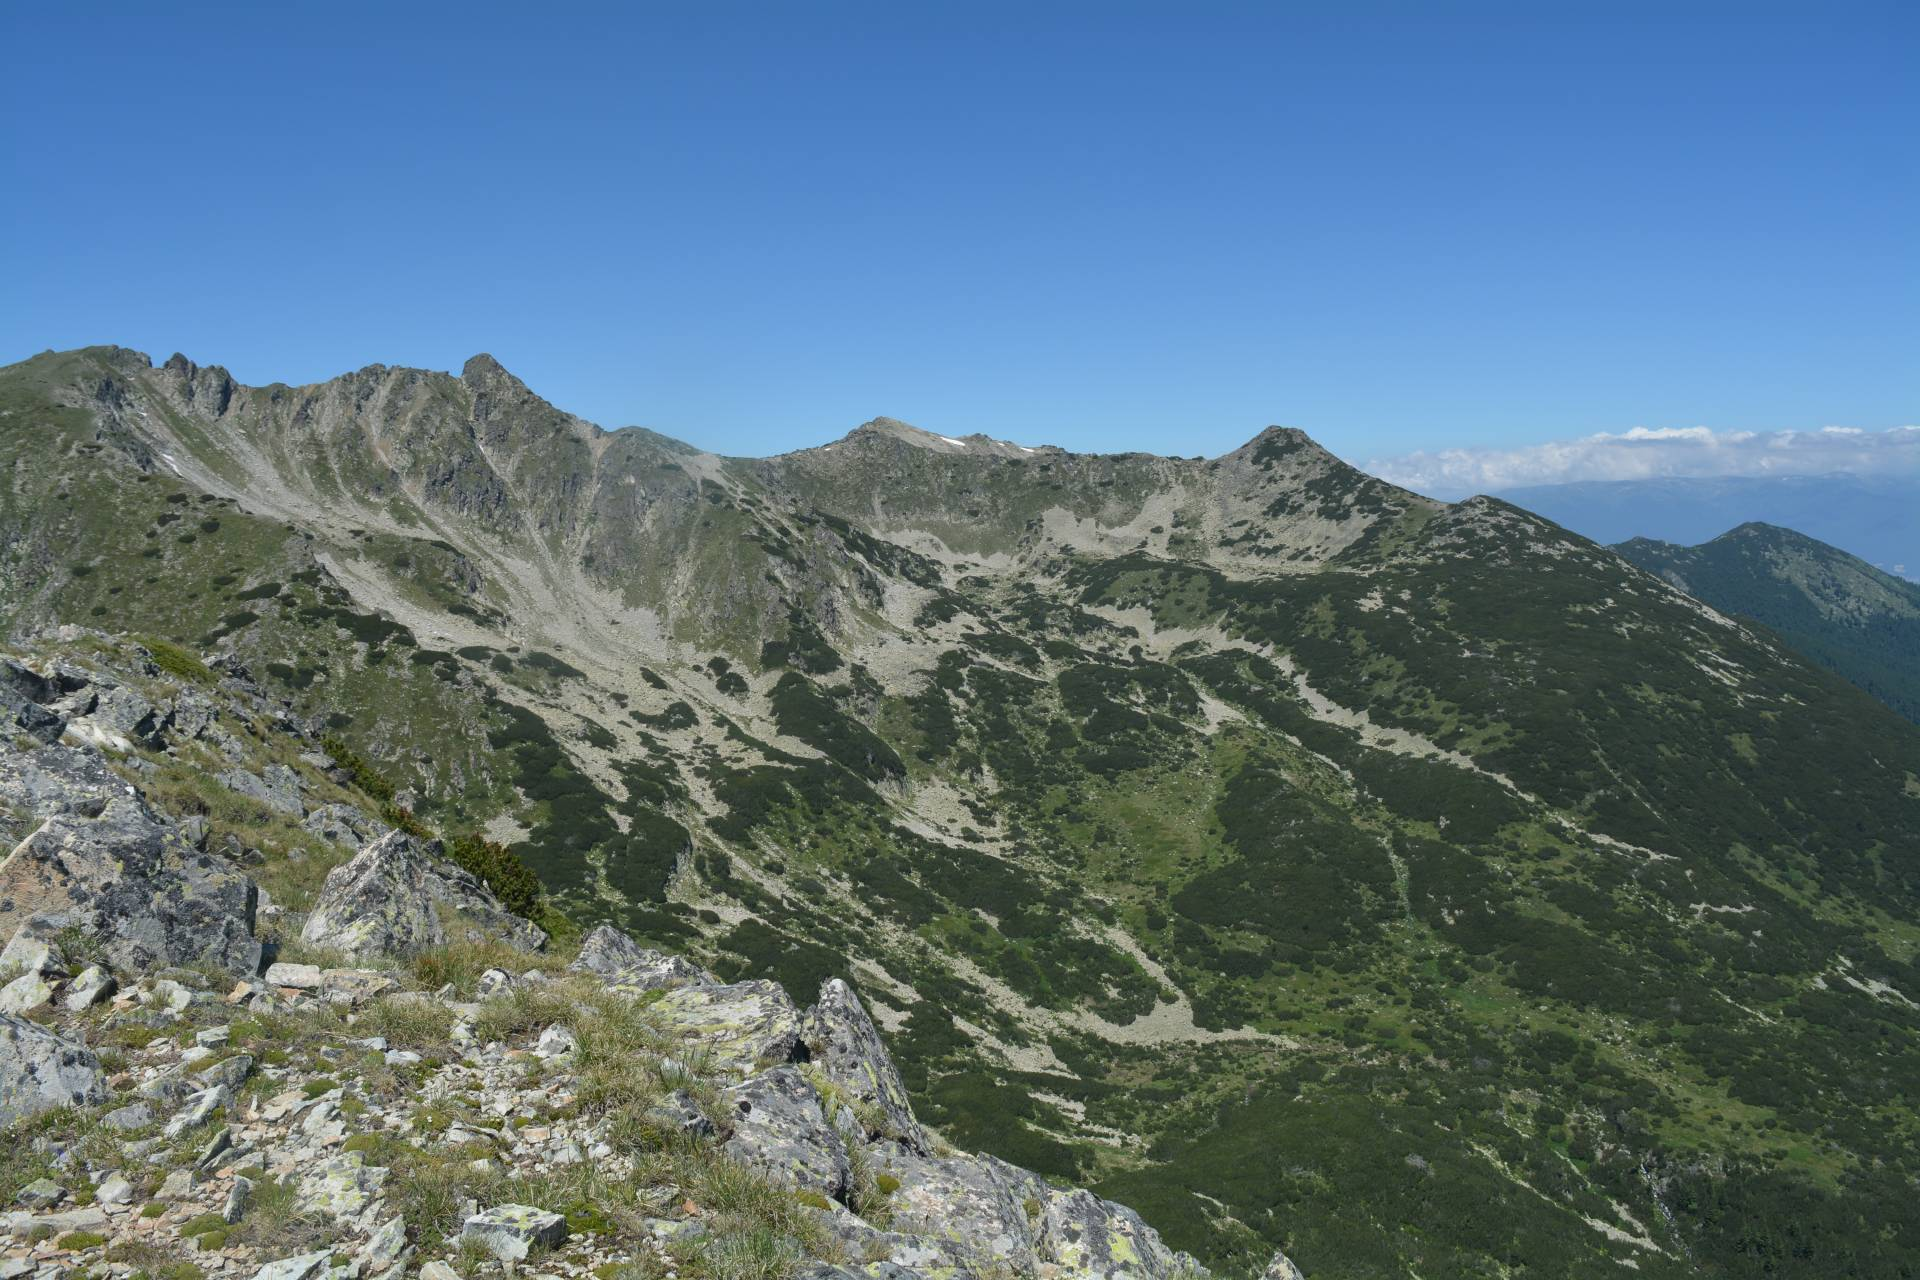 Hiking in the Pirin Mountains, Bulgaria